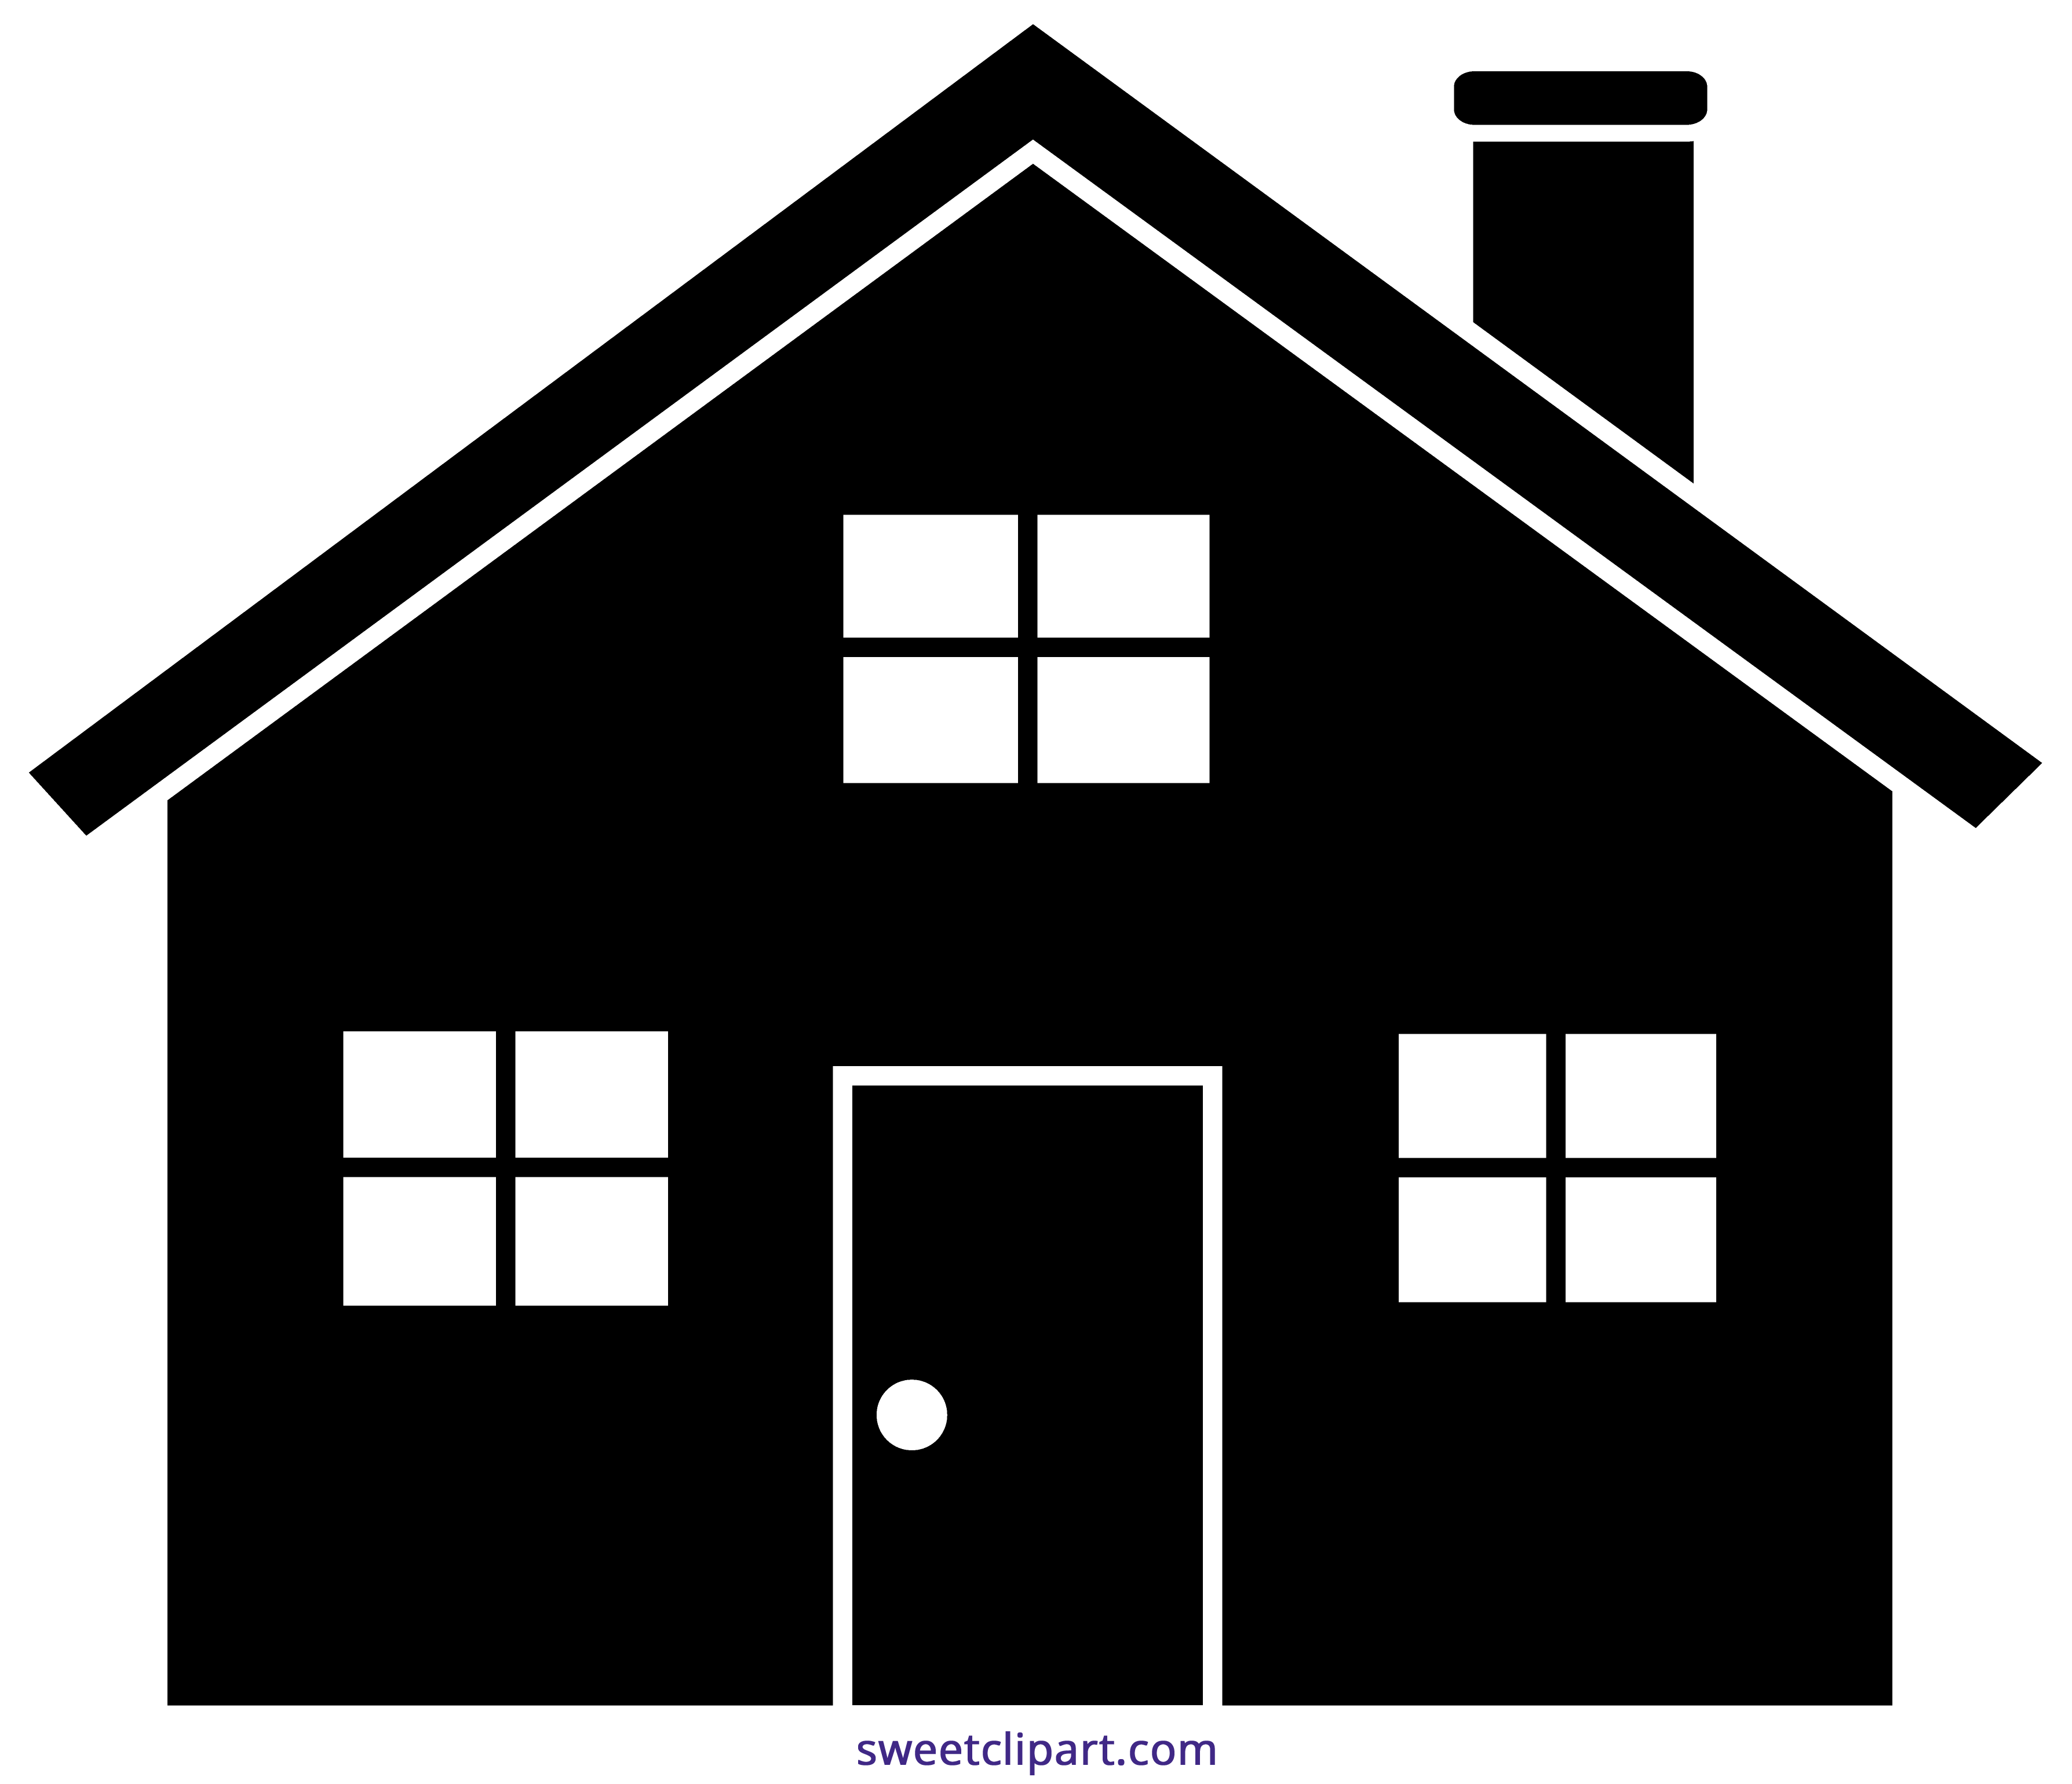 Related Image House Silhouette Cute House House Clipart